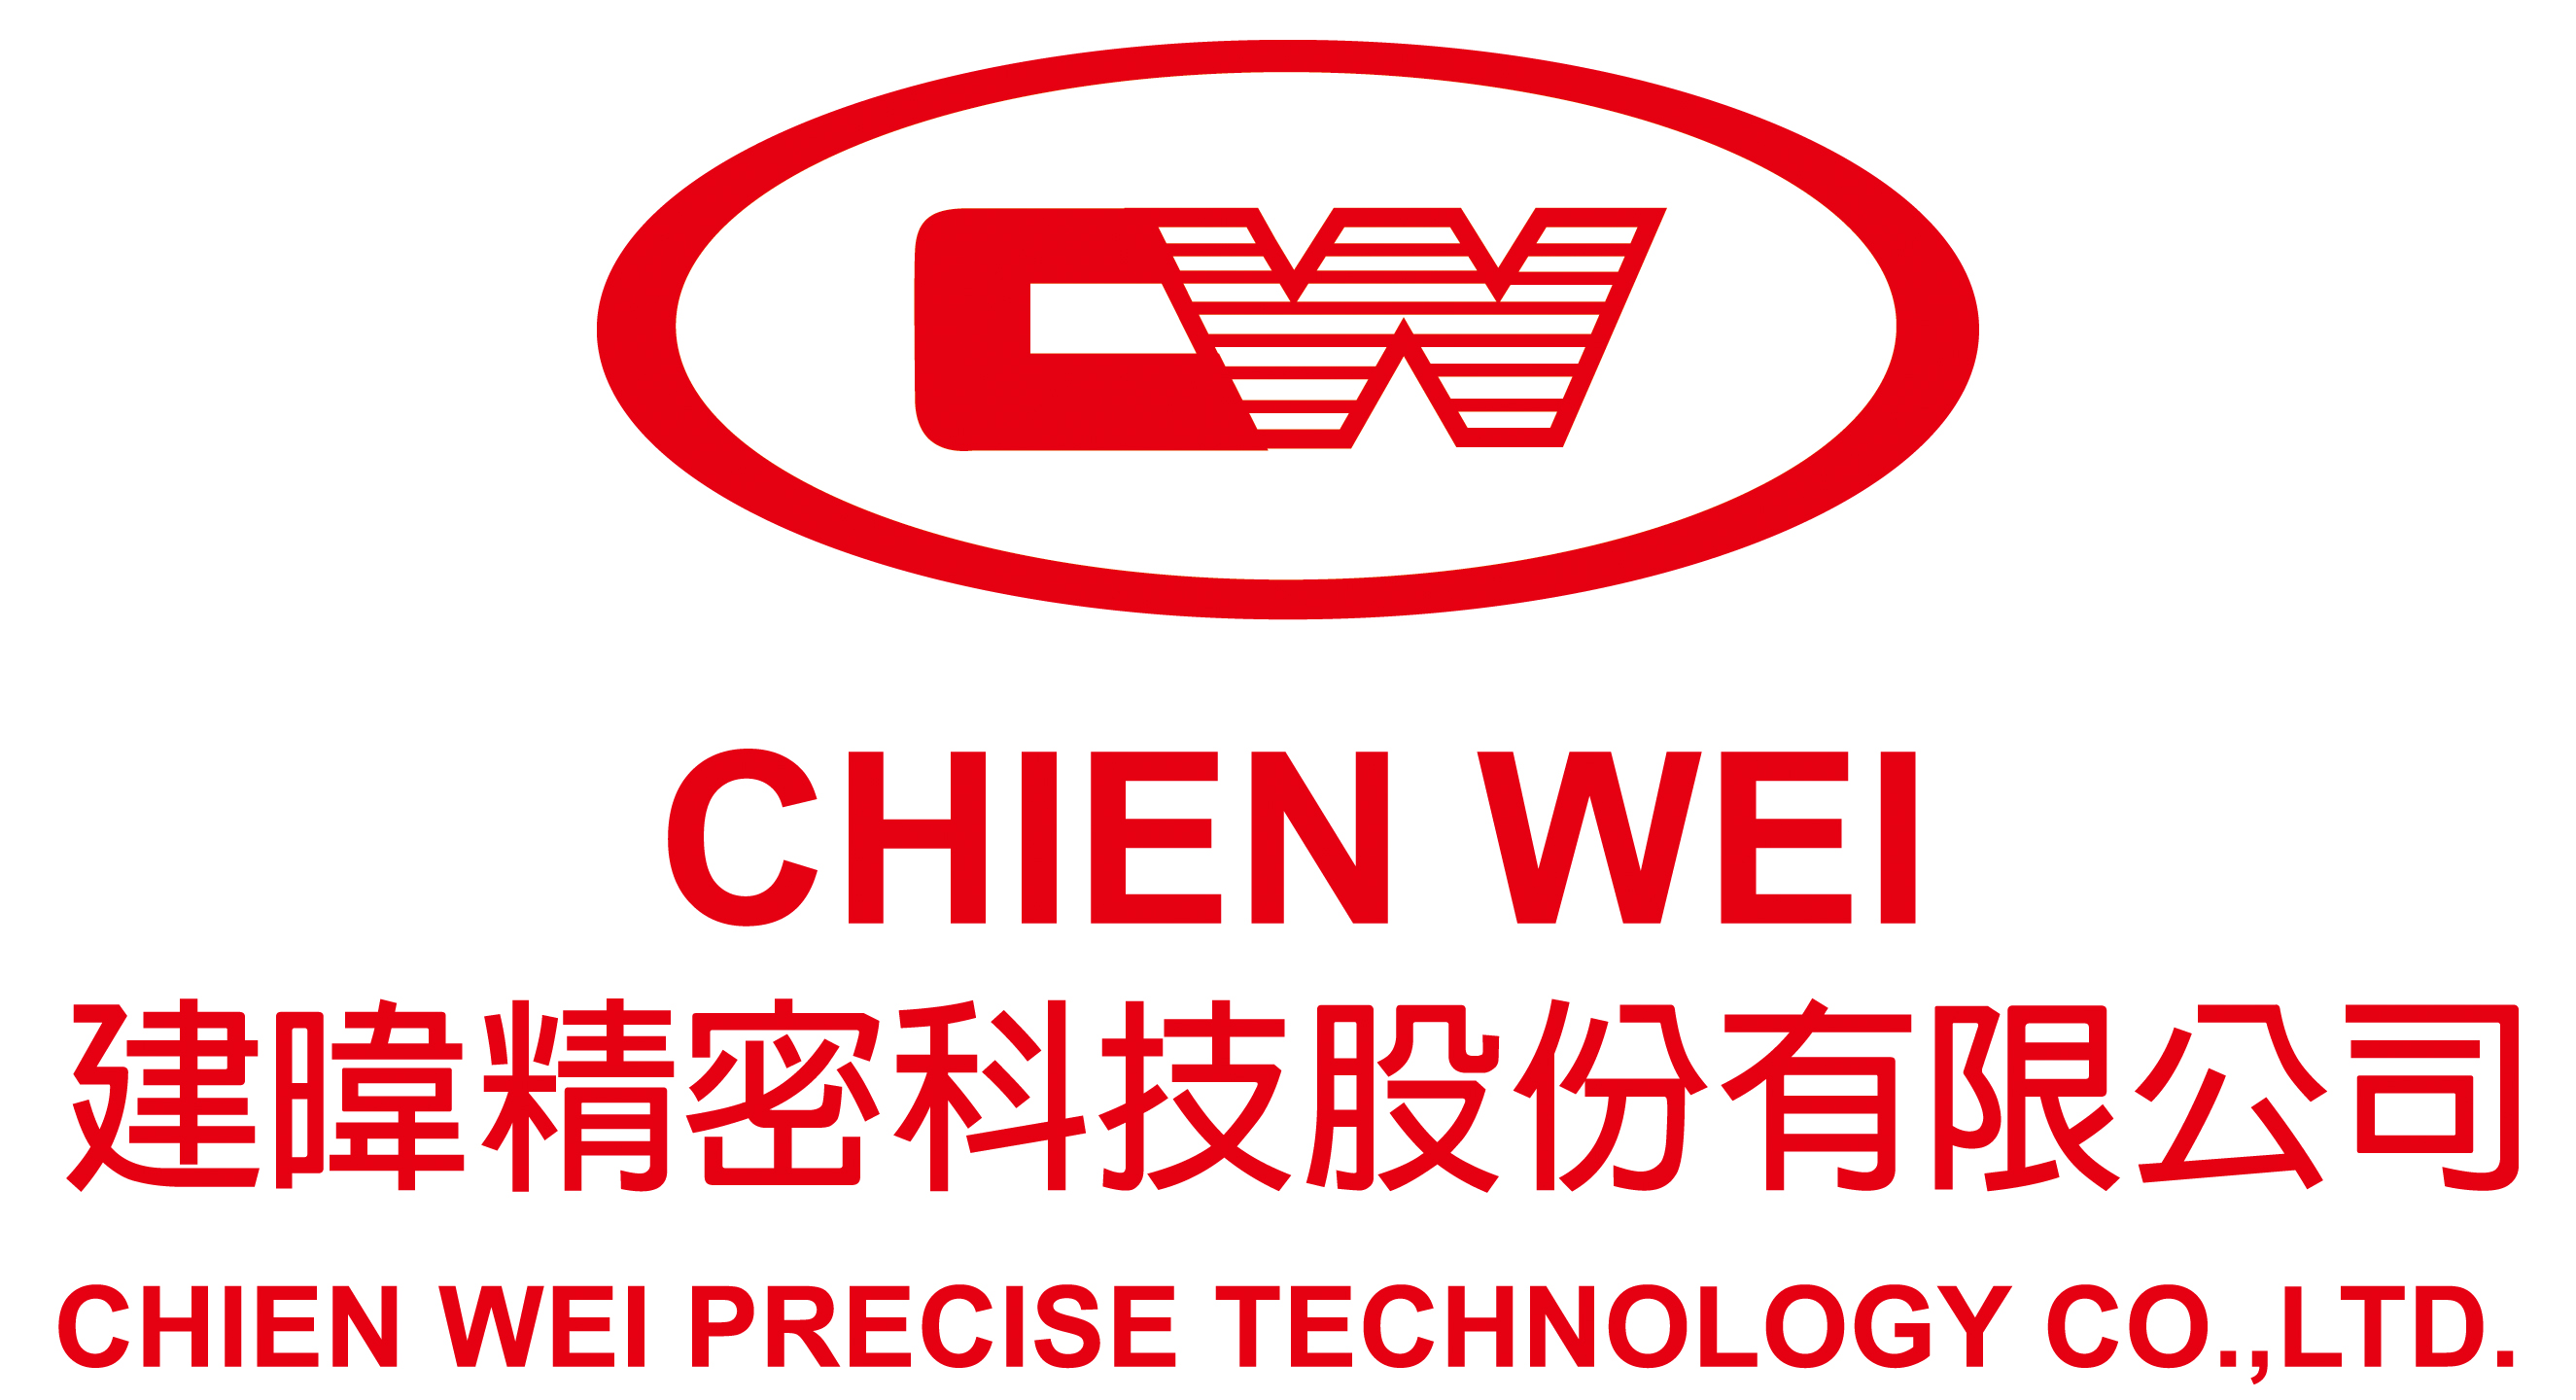 CHIEN WEI PRECISE TECHNOLOGY CO., LTD.